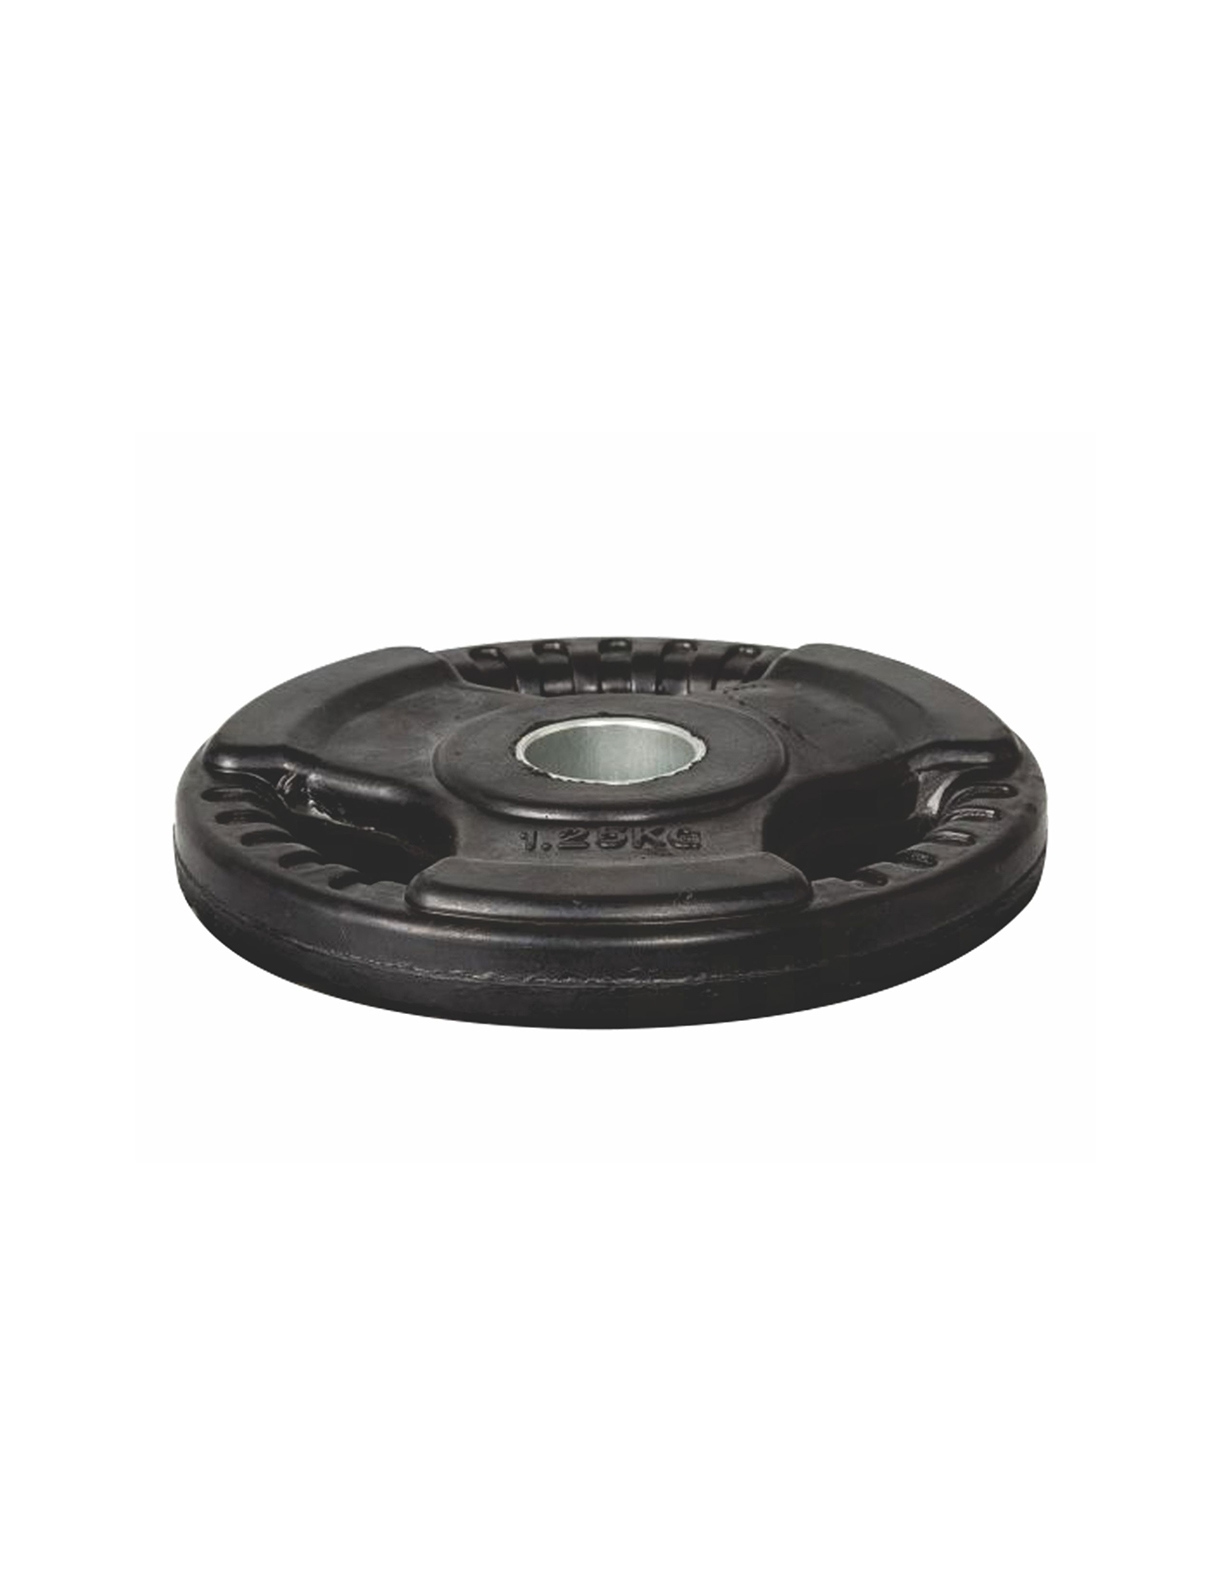 RUBBER WEIGHT PLATES INDIAN MAKE